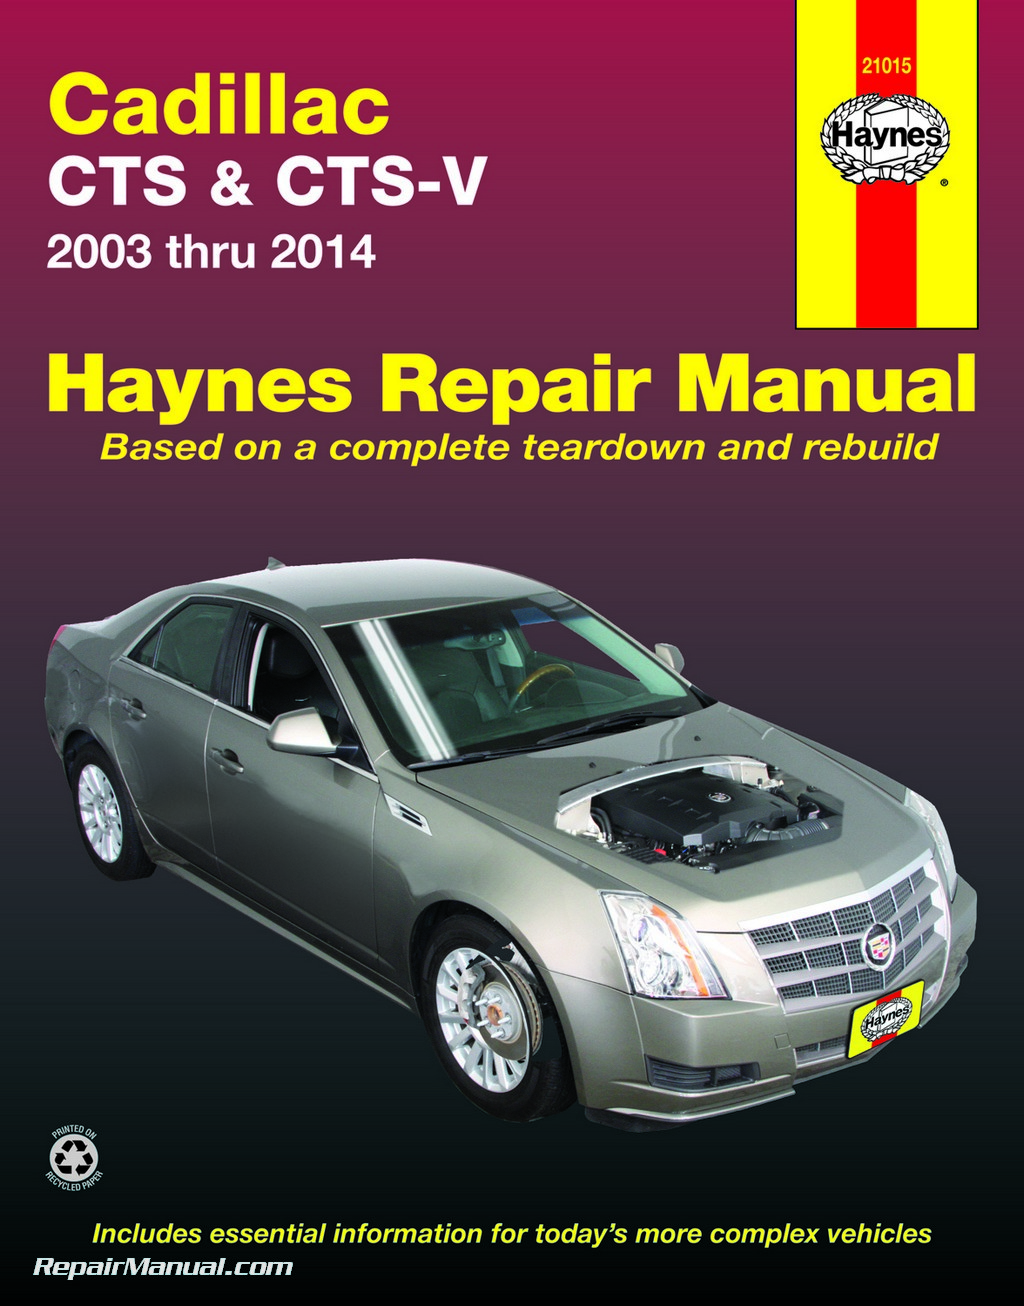 2014 Cadillac Cts Parts Diagram Excellent Electrical Wiring Sts Engine V 2003 Repair Manual By Haynes Rh Repairmanual Com